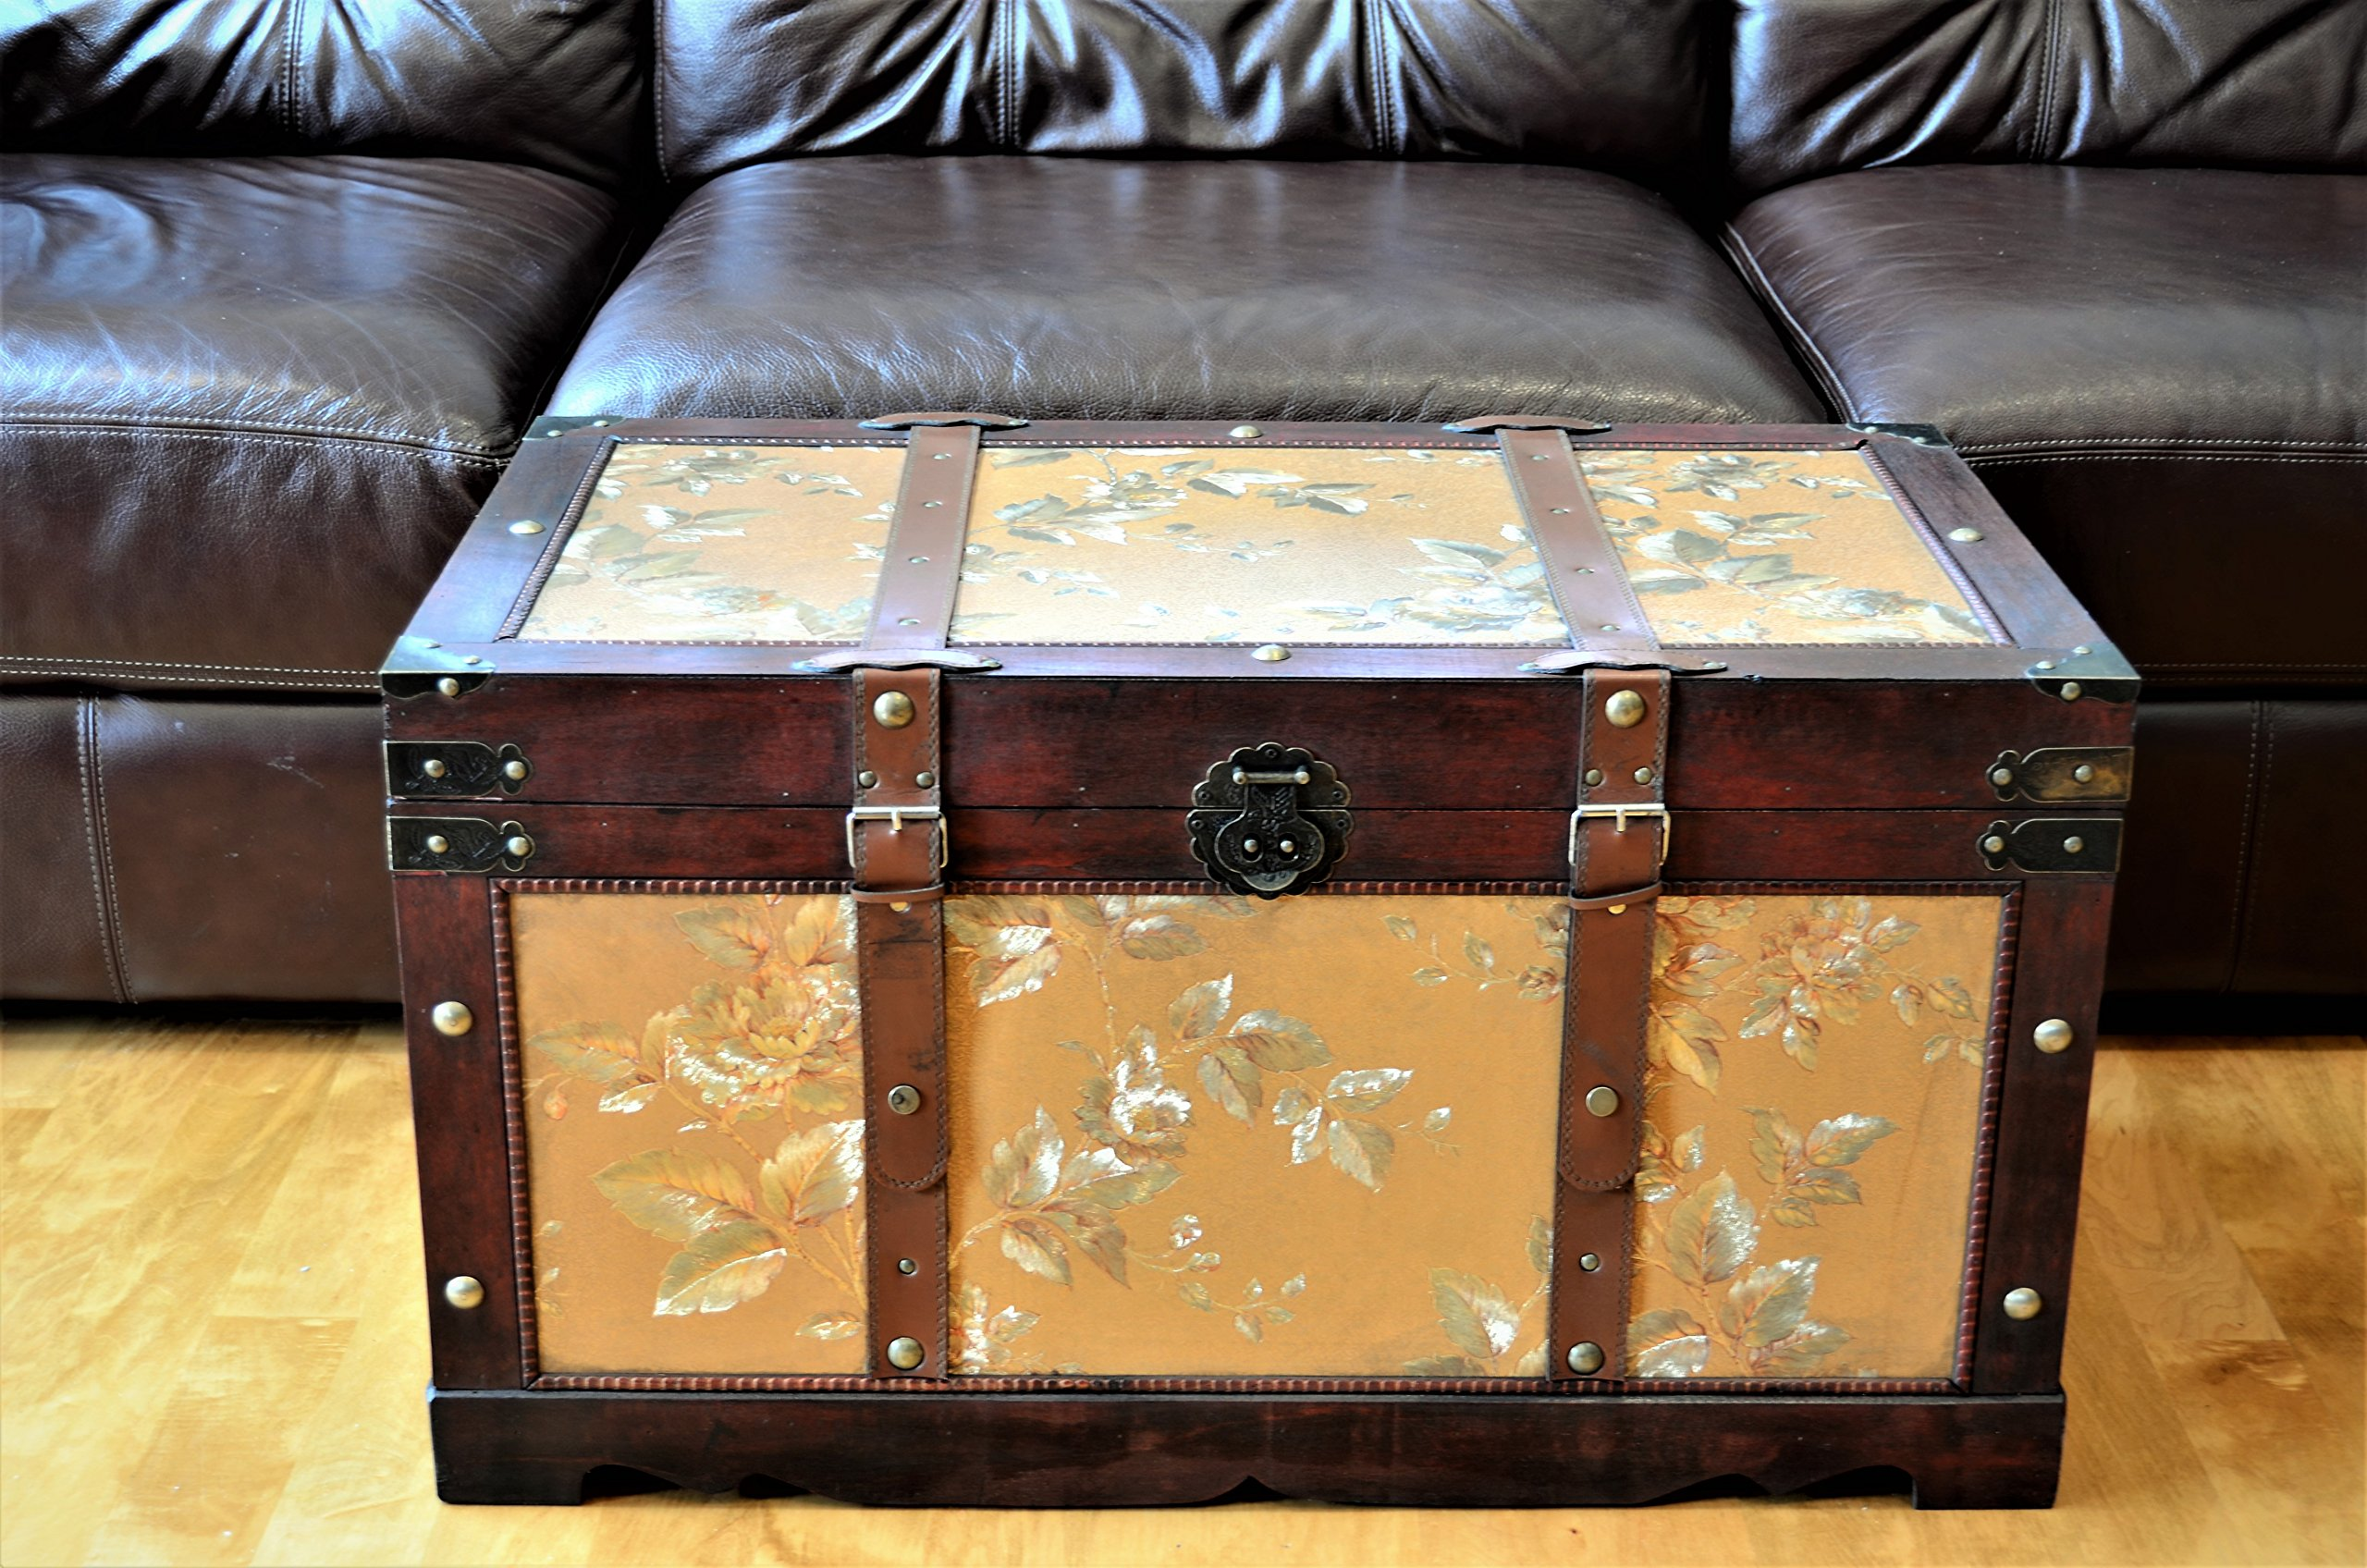 Gold Leaves Medium Wood Storage Trunk Wooden Treasure Chest